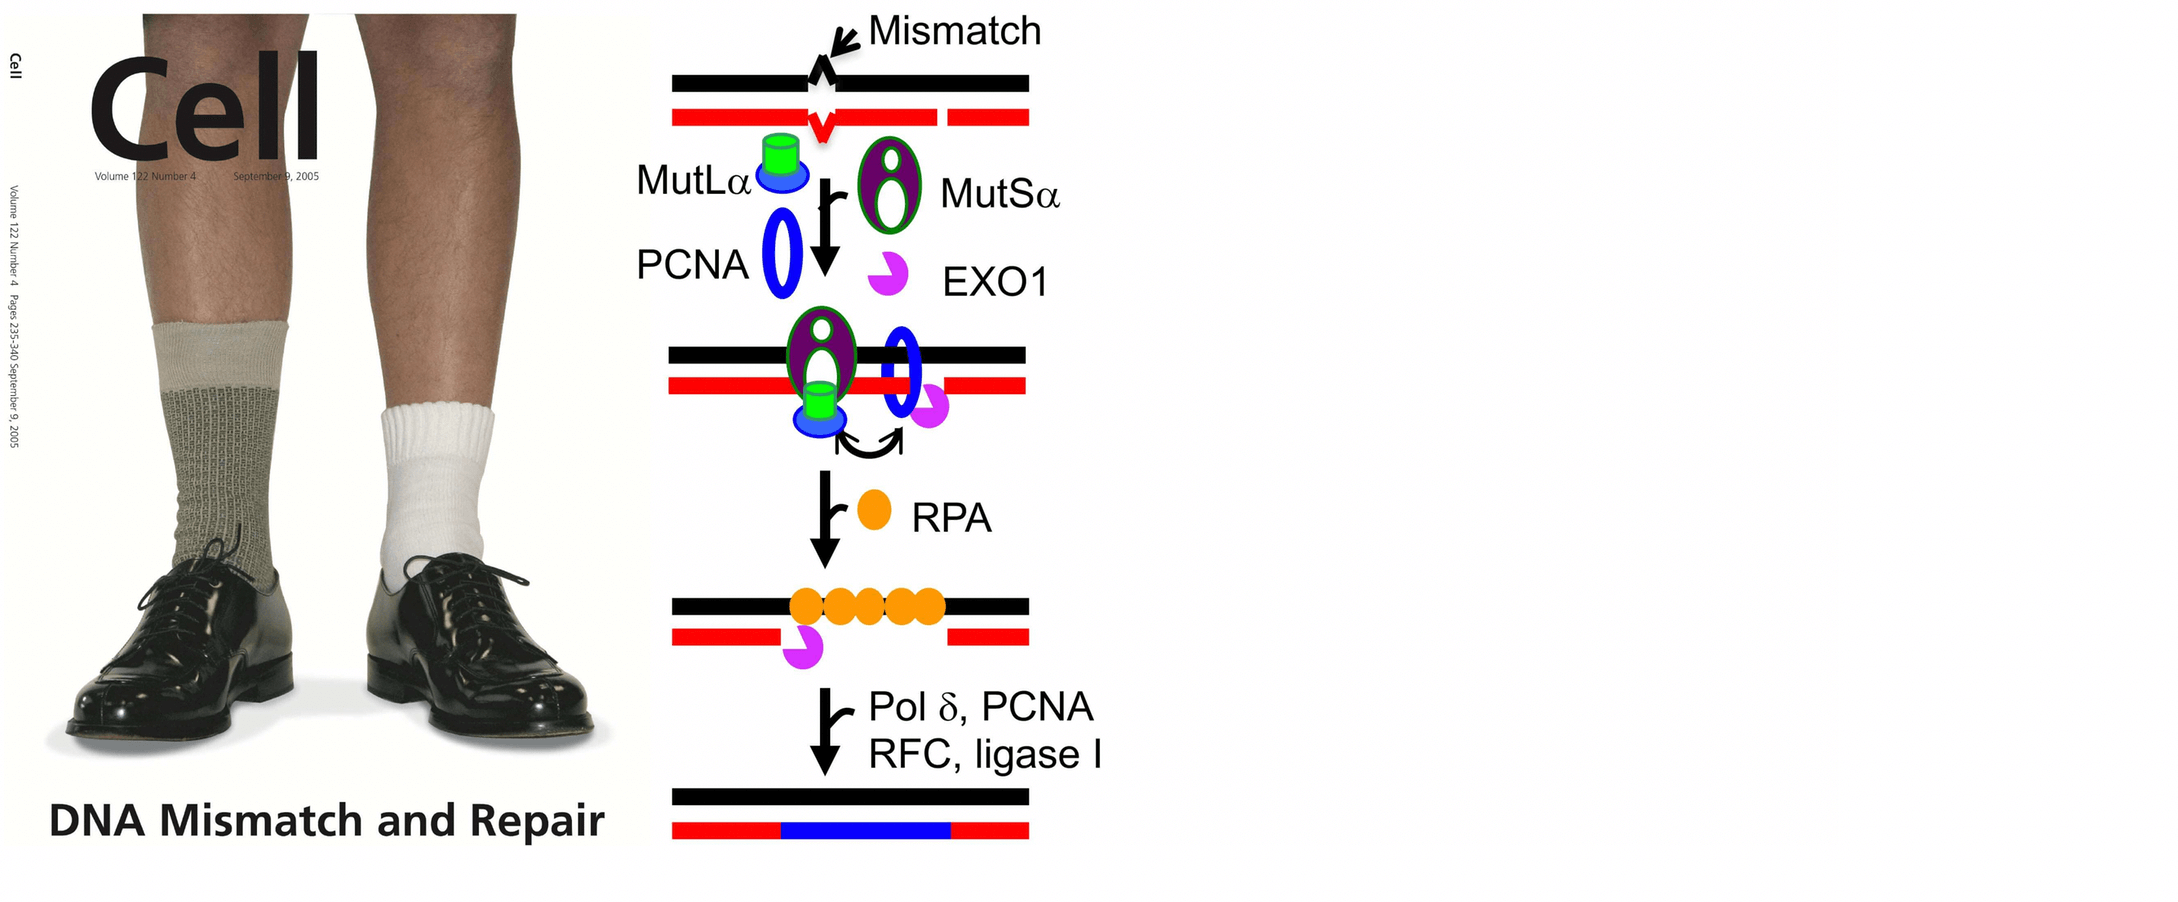 DNA Mismatch and Repair